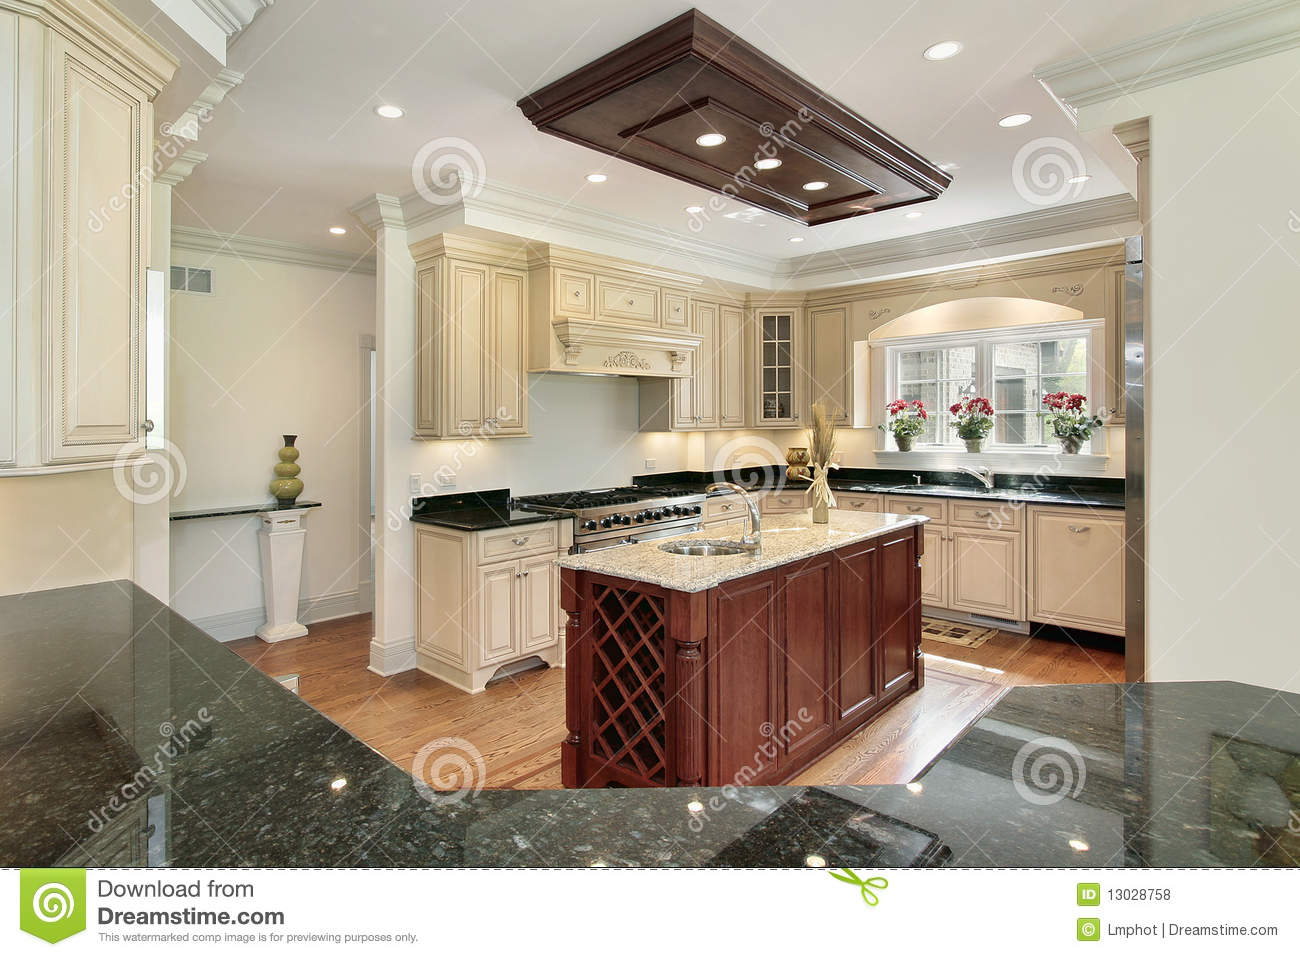 Kitchen With Center Island kitchen with center island royalty free stock photos - image: 13028758